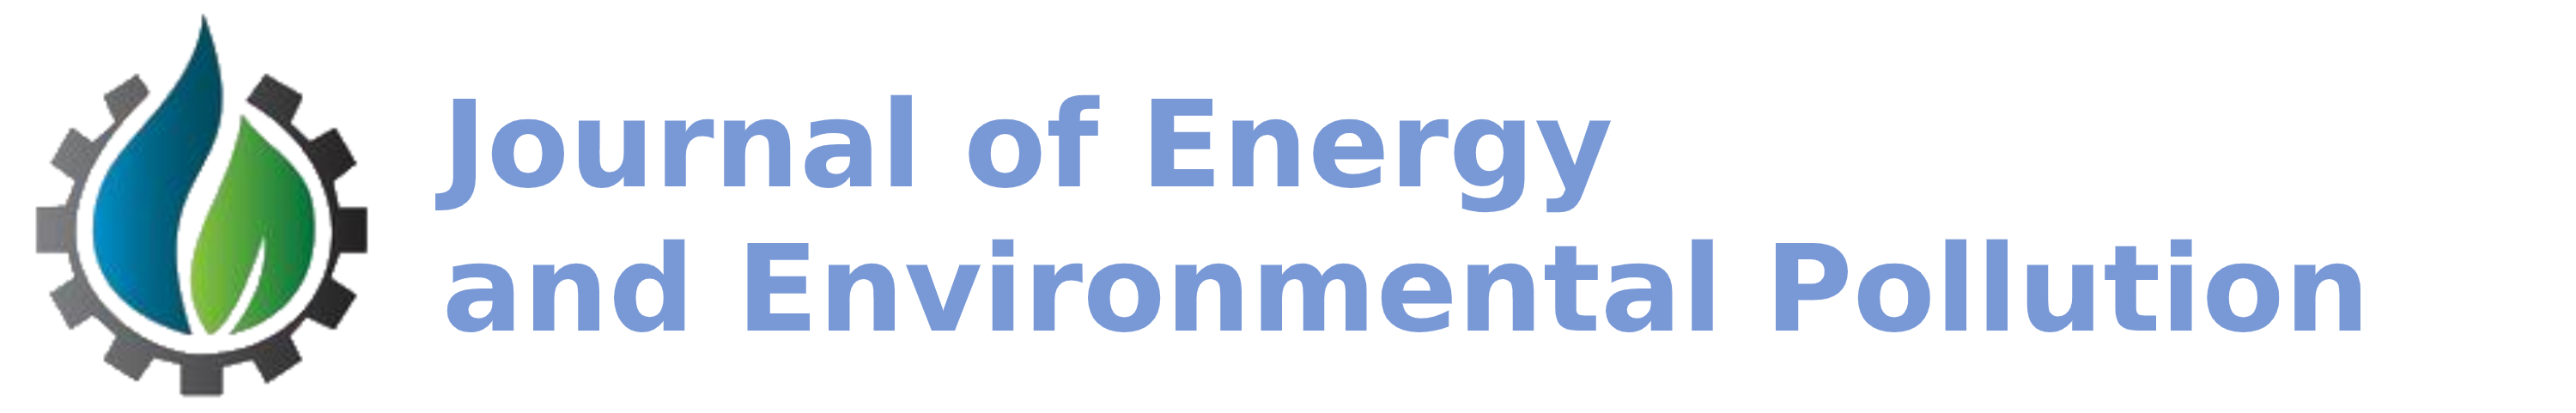 Journal of Energy and Environmental Pollution